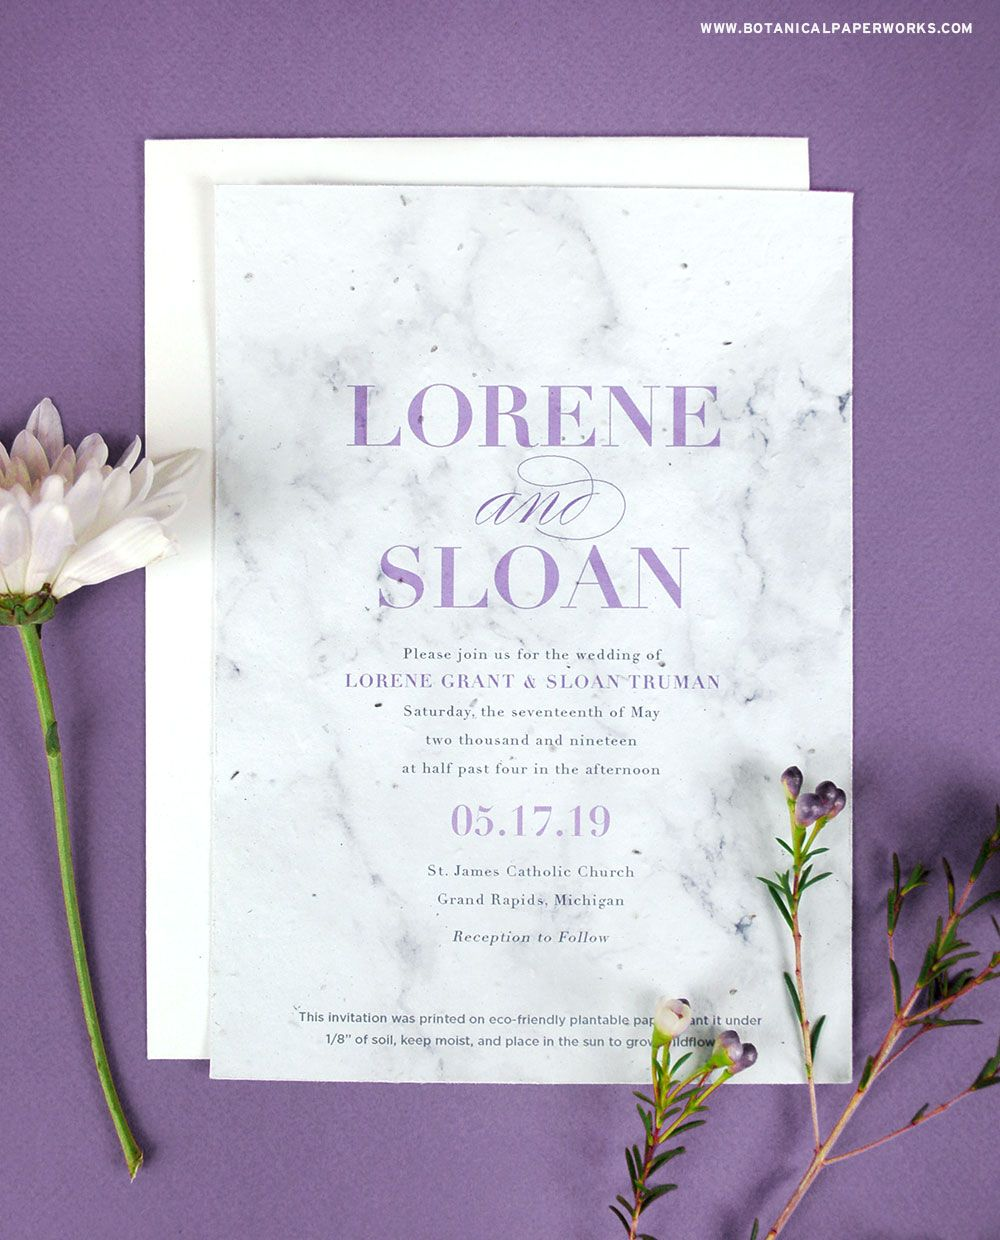 Marble Plantable Wedding Invitations | Seed paper, Weddings and Wedding